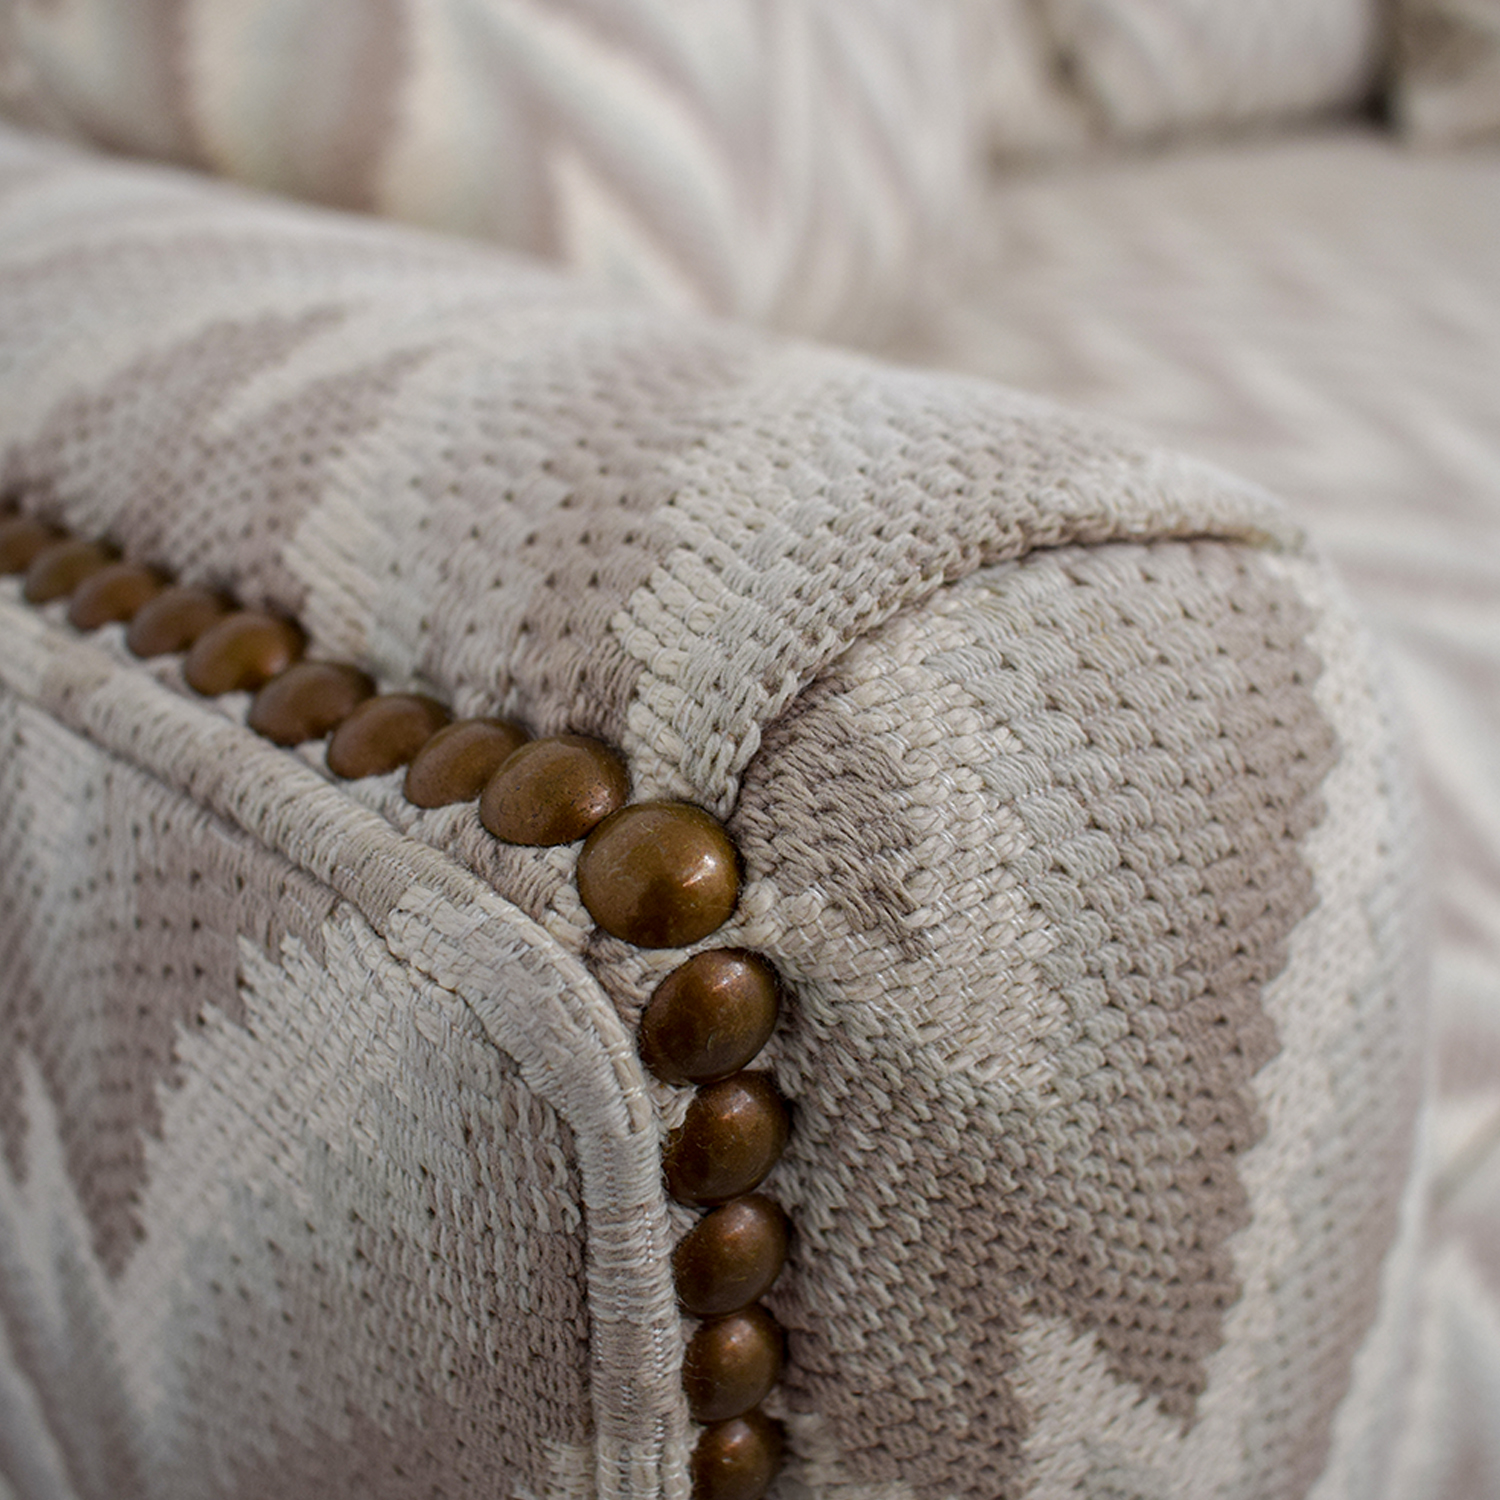 The Hickory Chair Furniture Co. The Hickory Chair Furniture Co. Chevron Nailhead Loveseat second hand